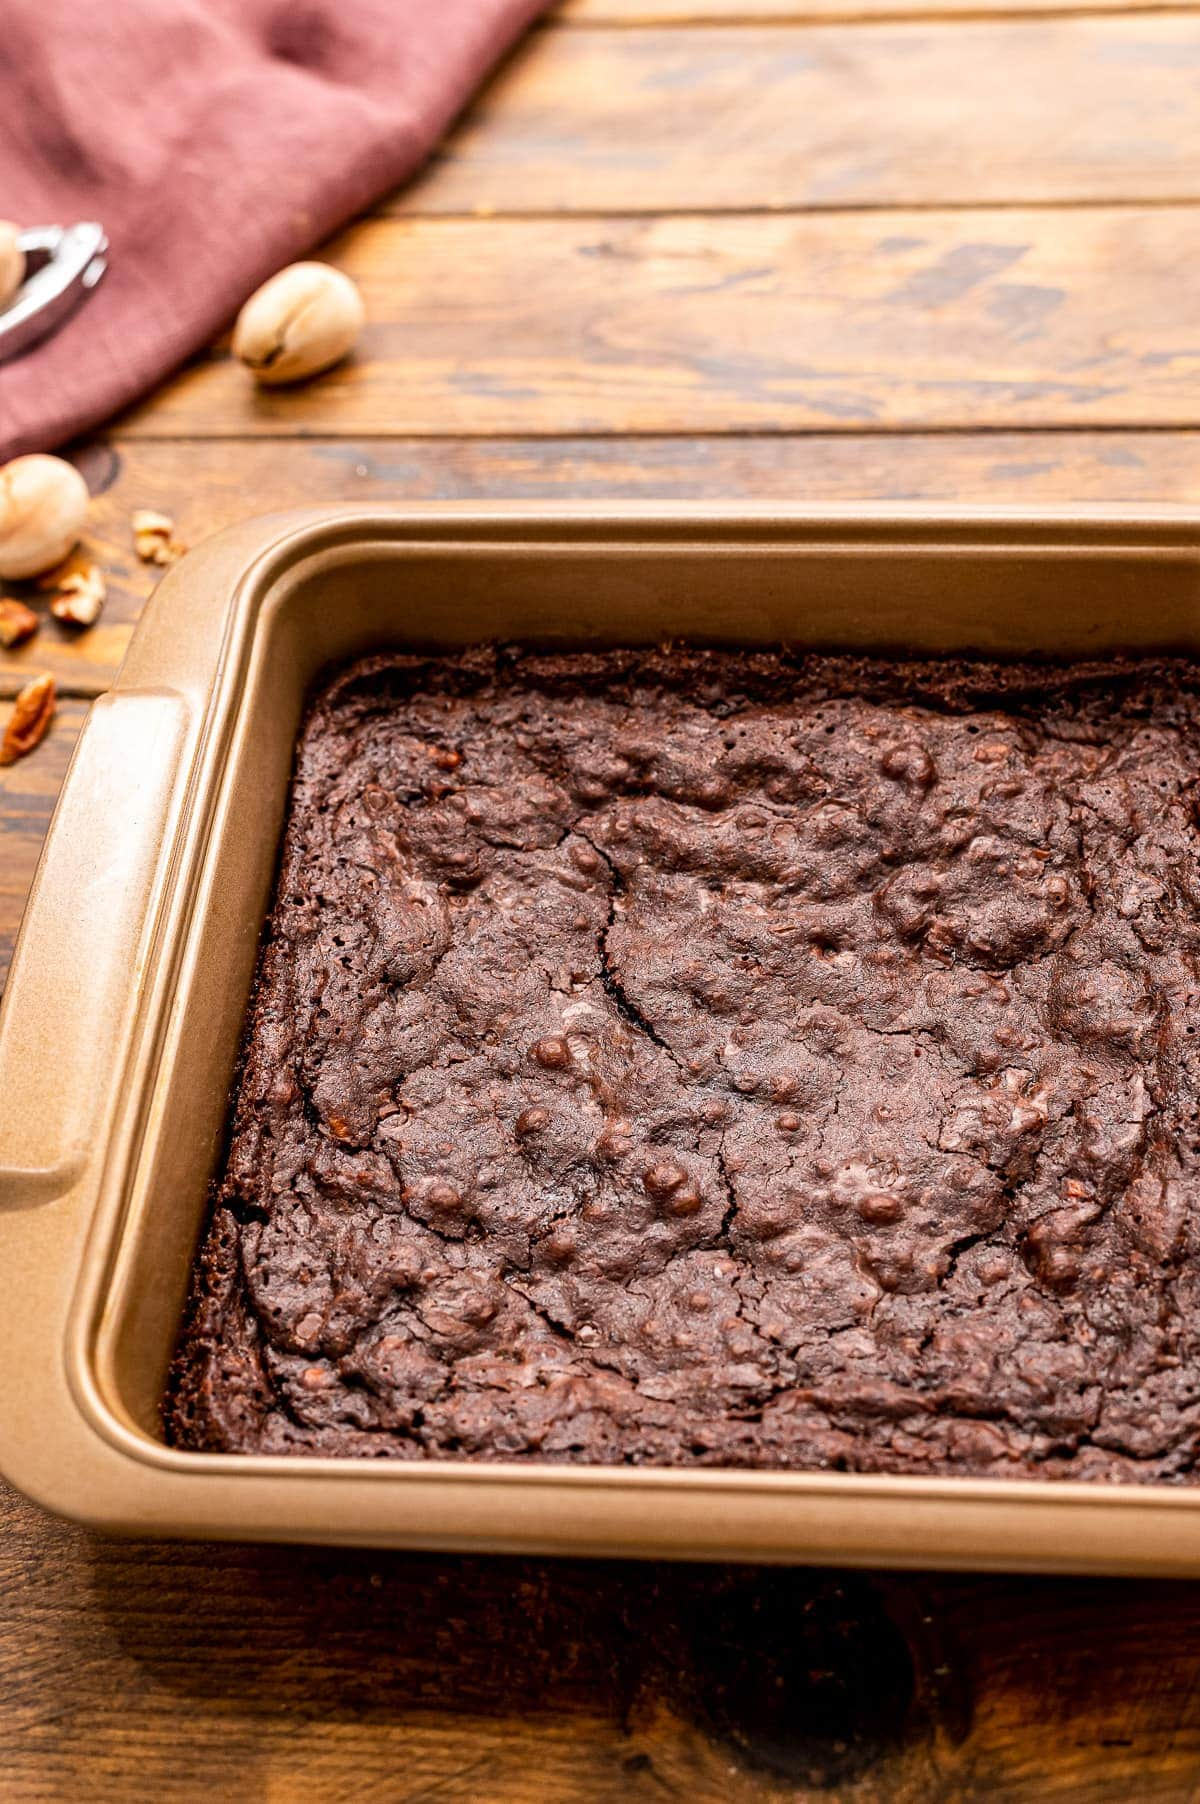 Square pan with homemade brownies